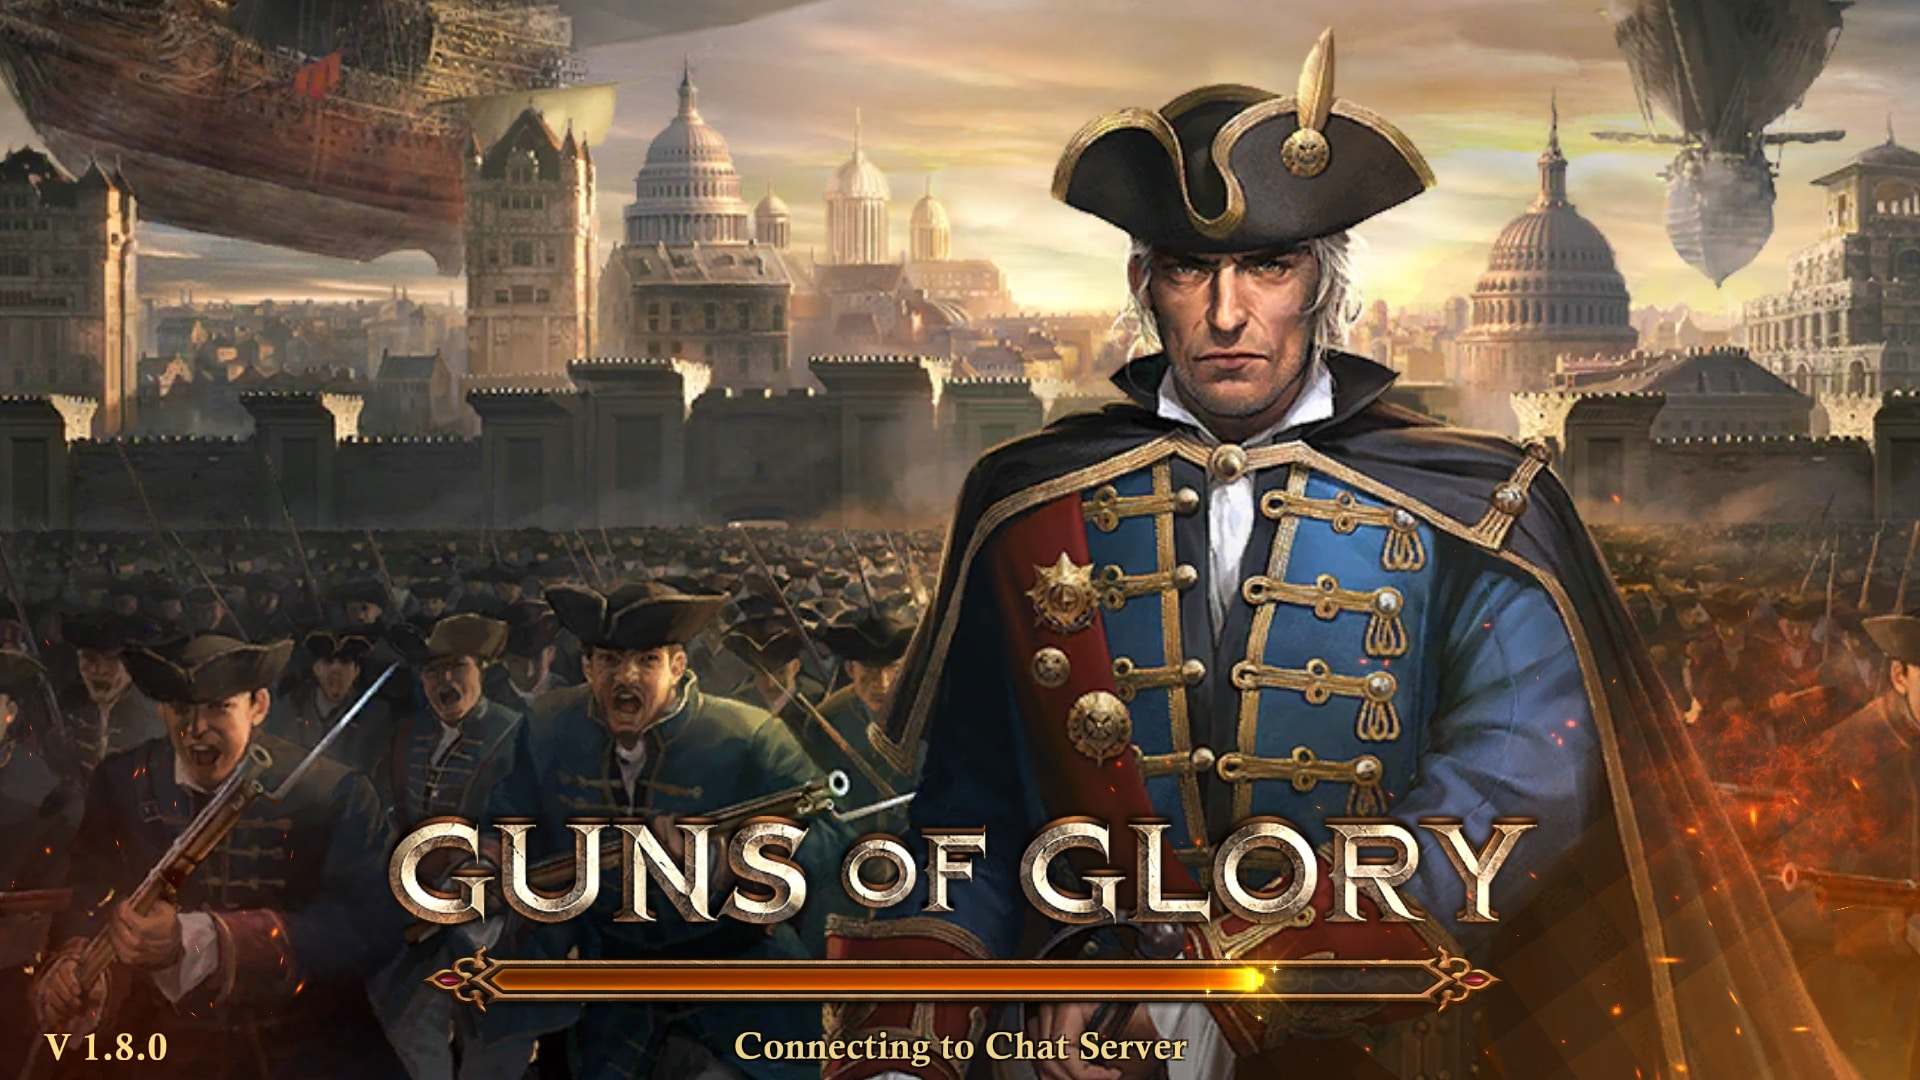 Download Guns of Glory APK- For Android and iOS 14